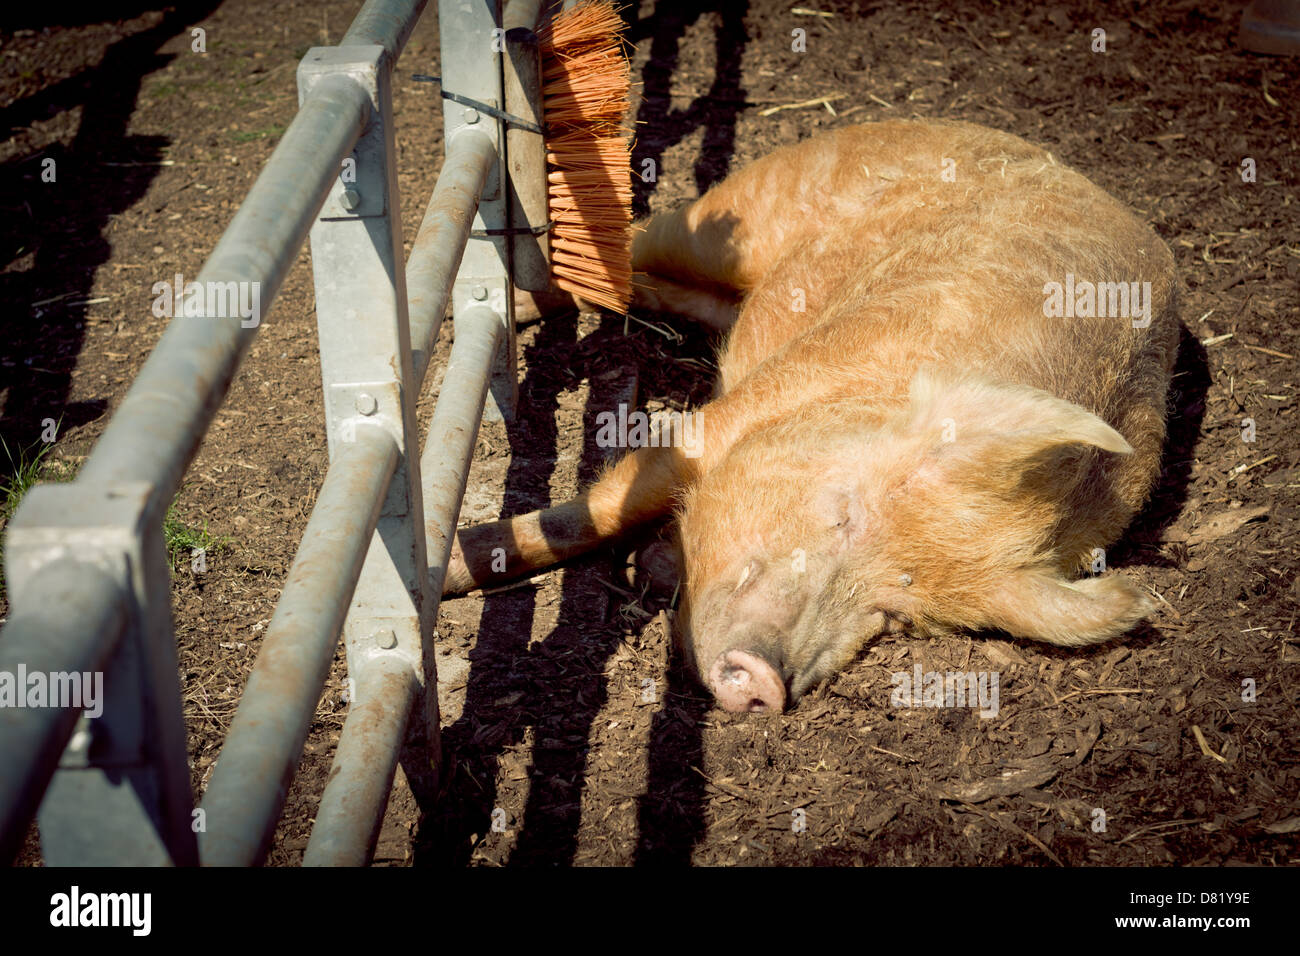 Pig Basking In The Sun - Stock Image